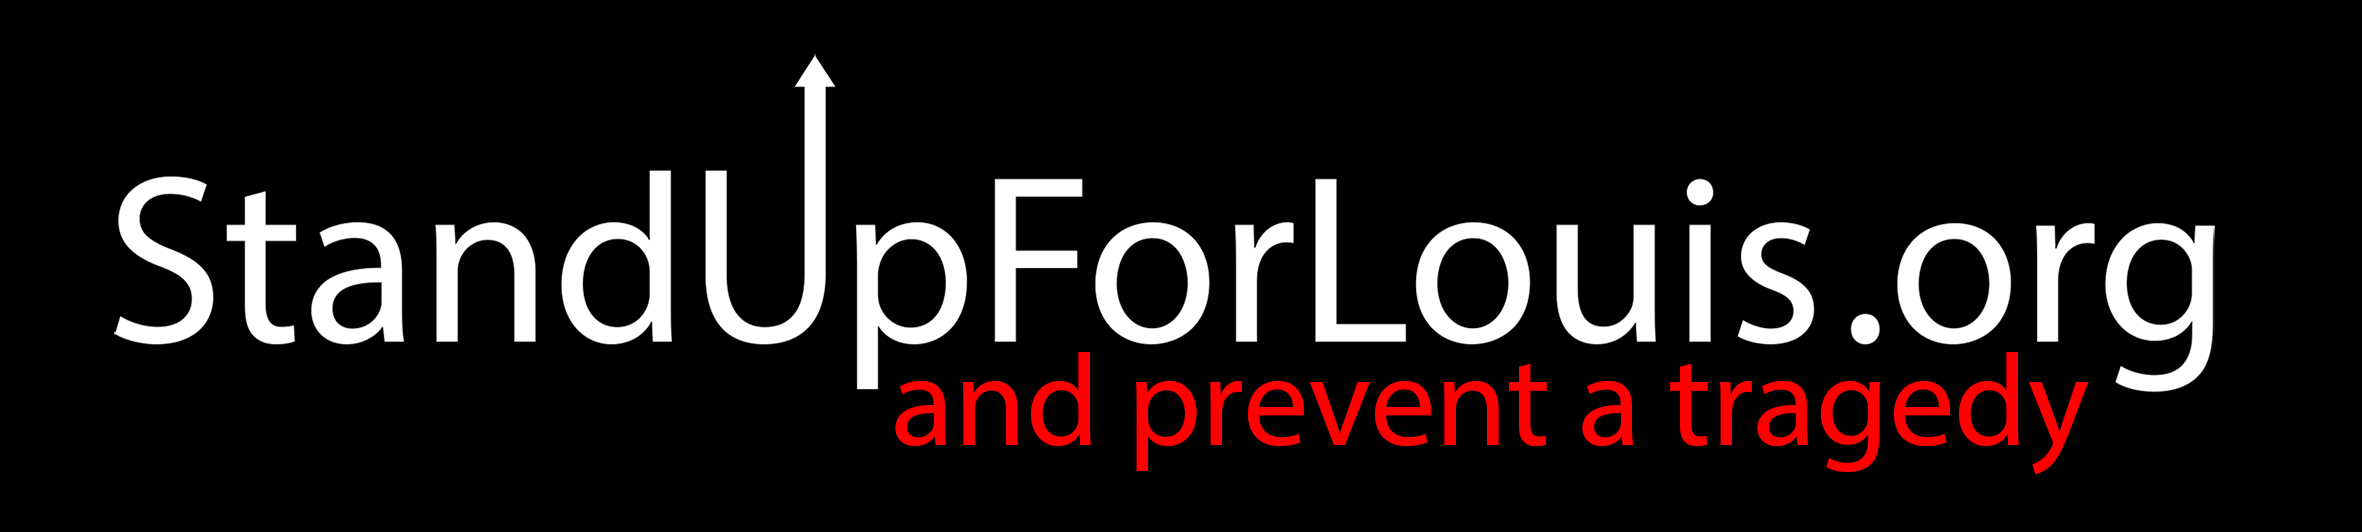 #standupforlouis car sticker